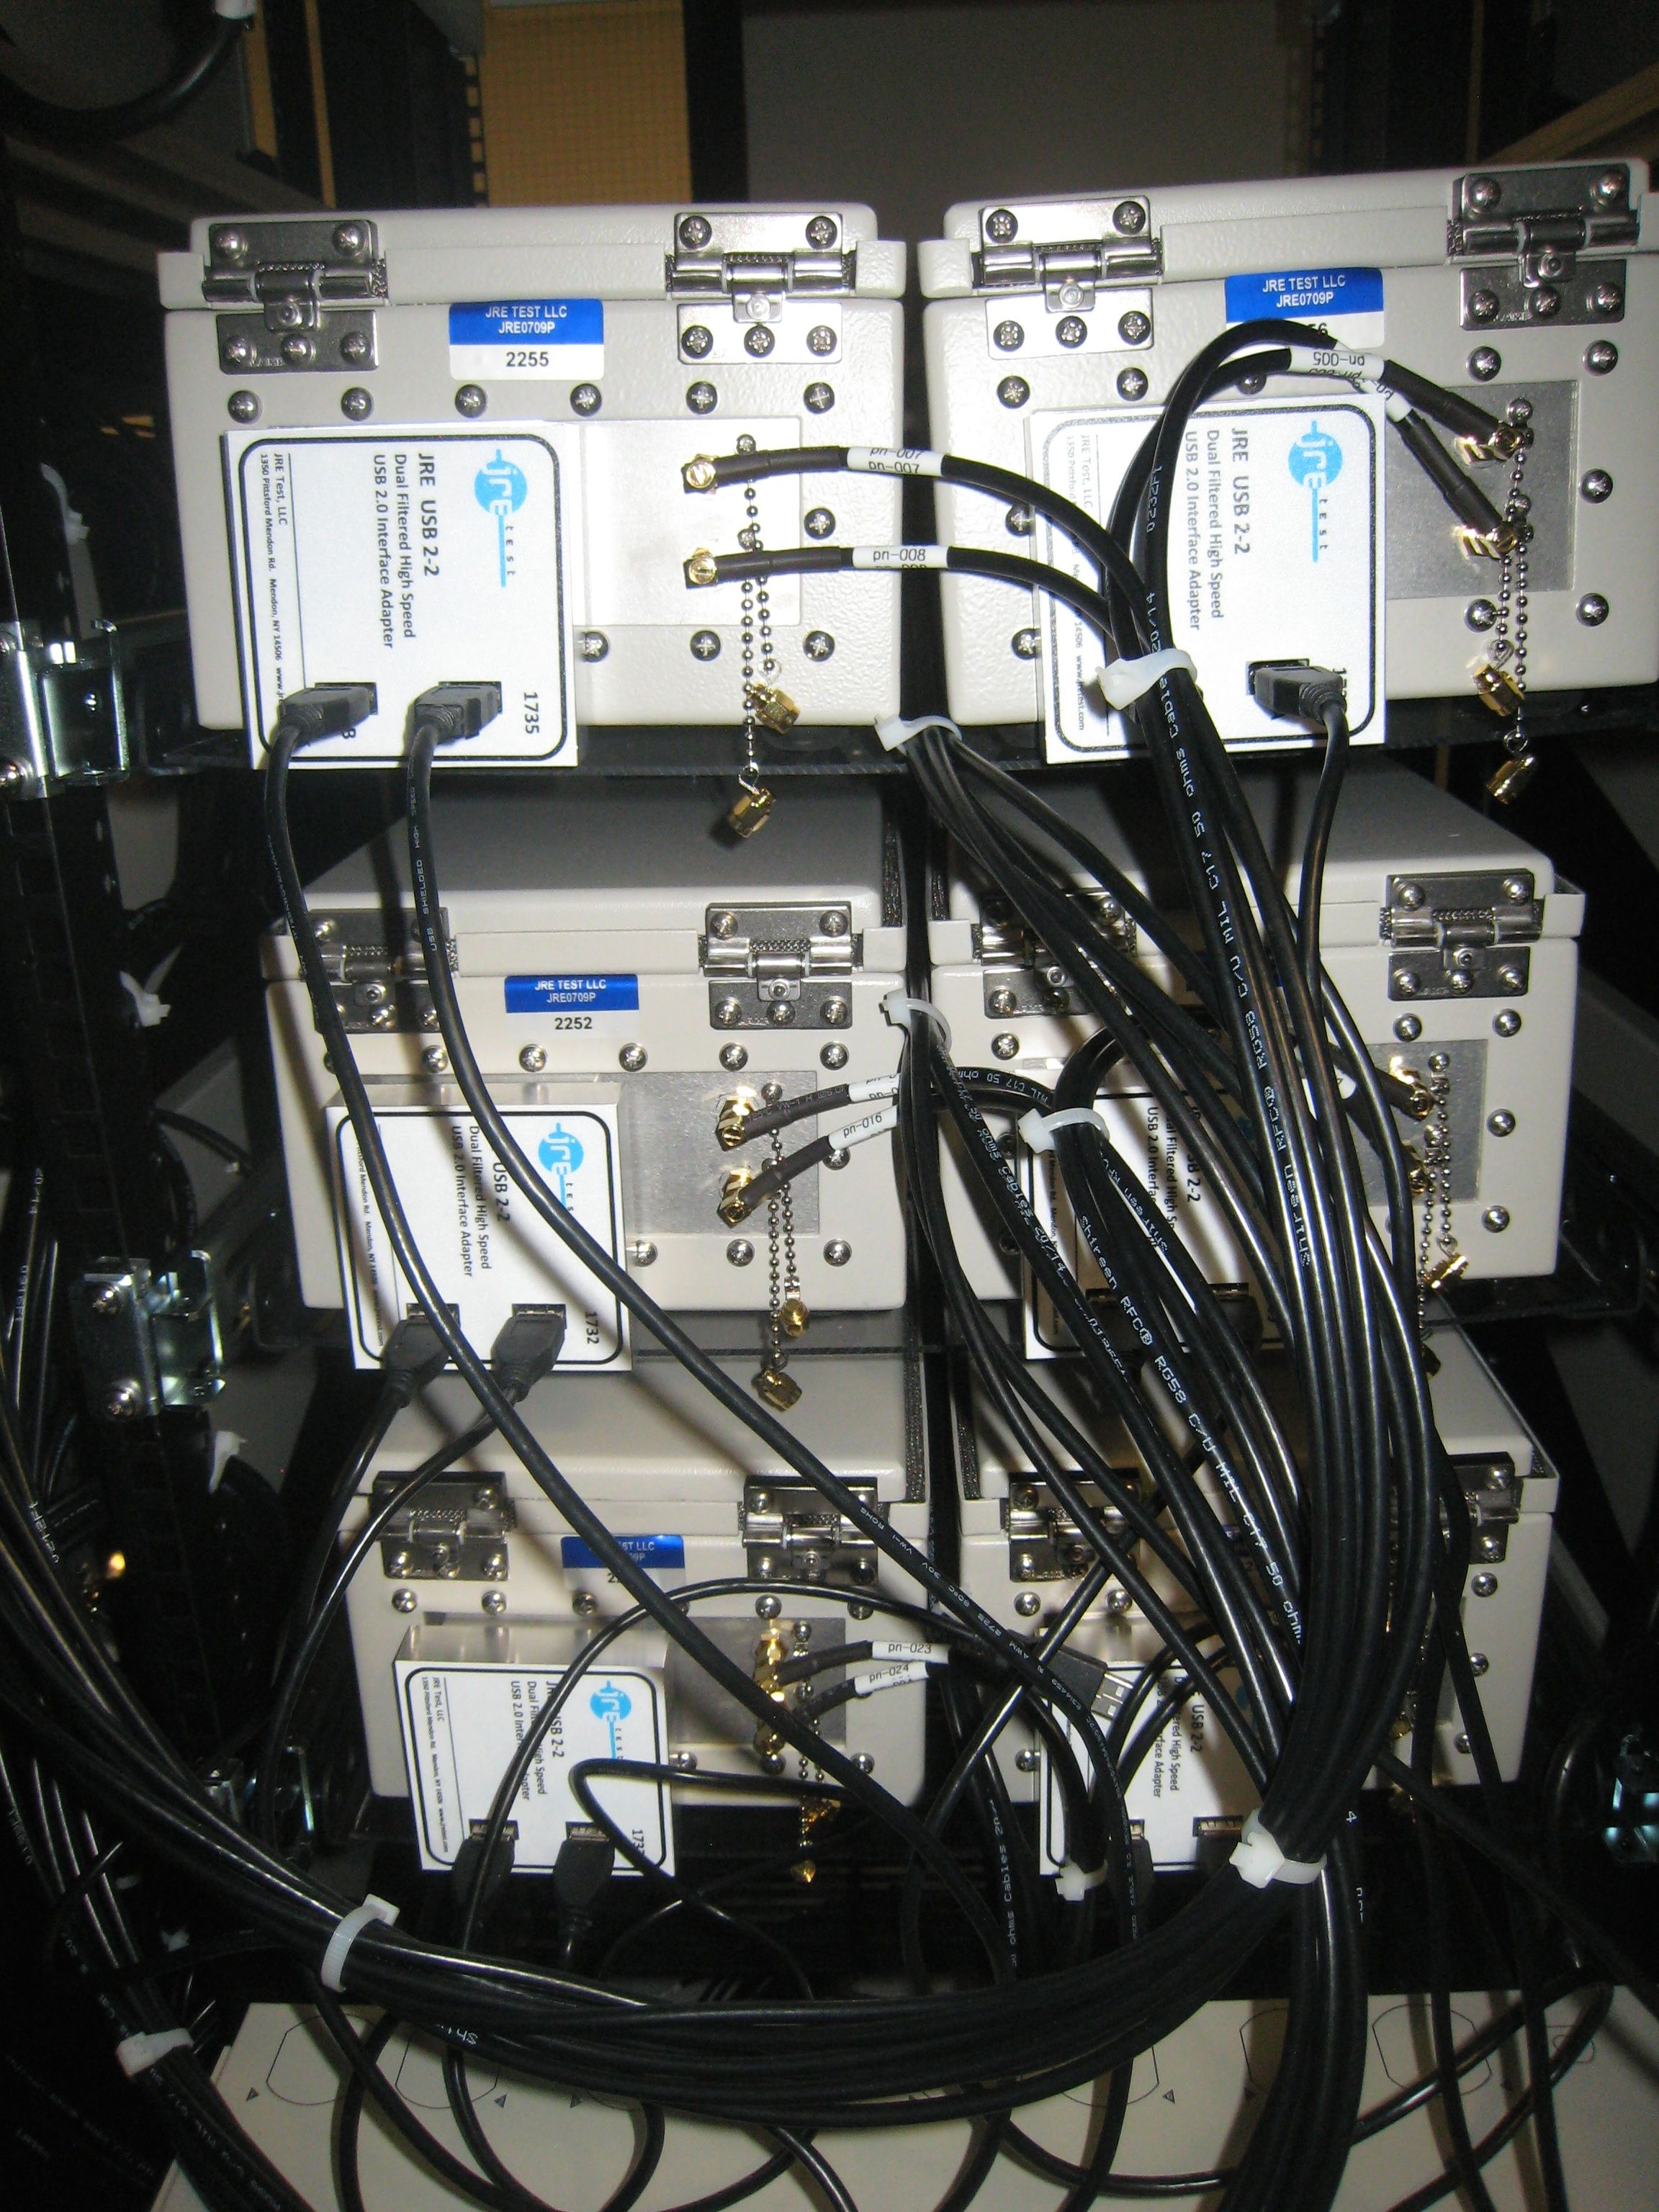 PhantomNet Equipment